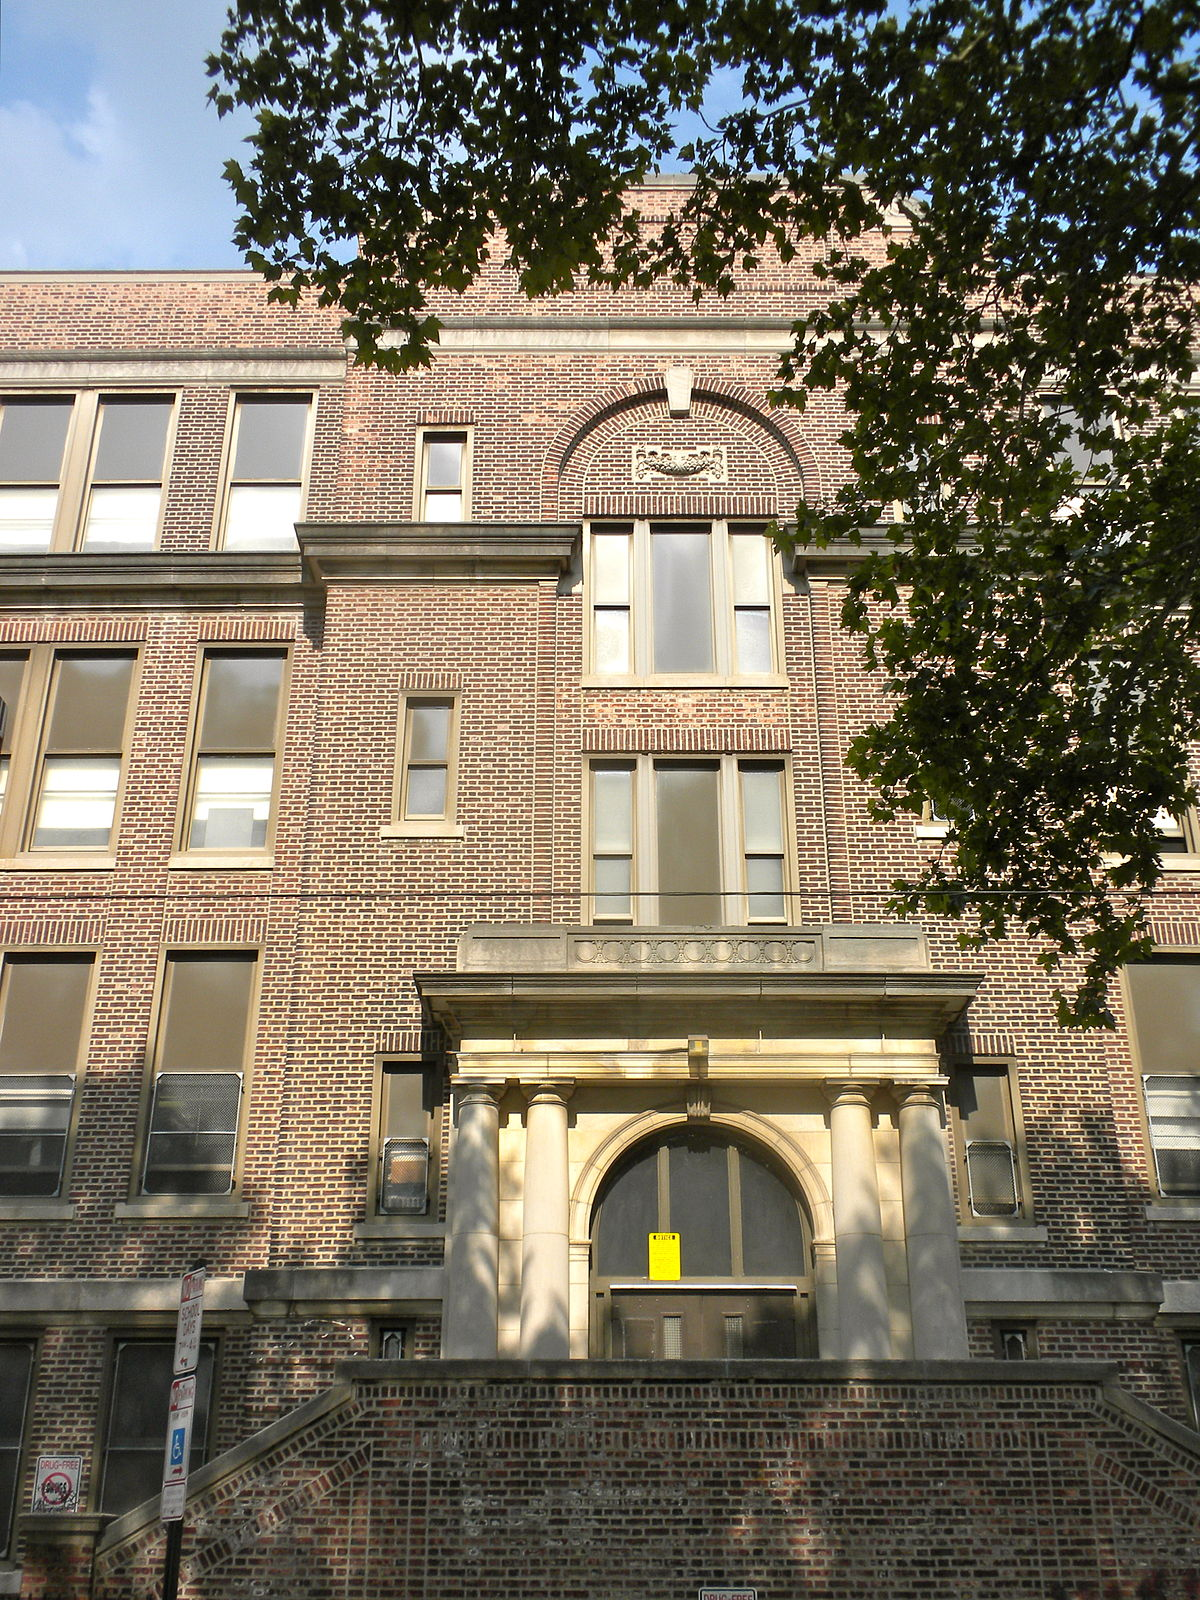 Lewis C. Cassidy School - Wikipedia